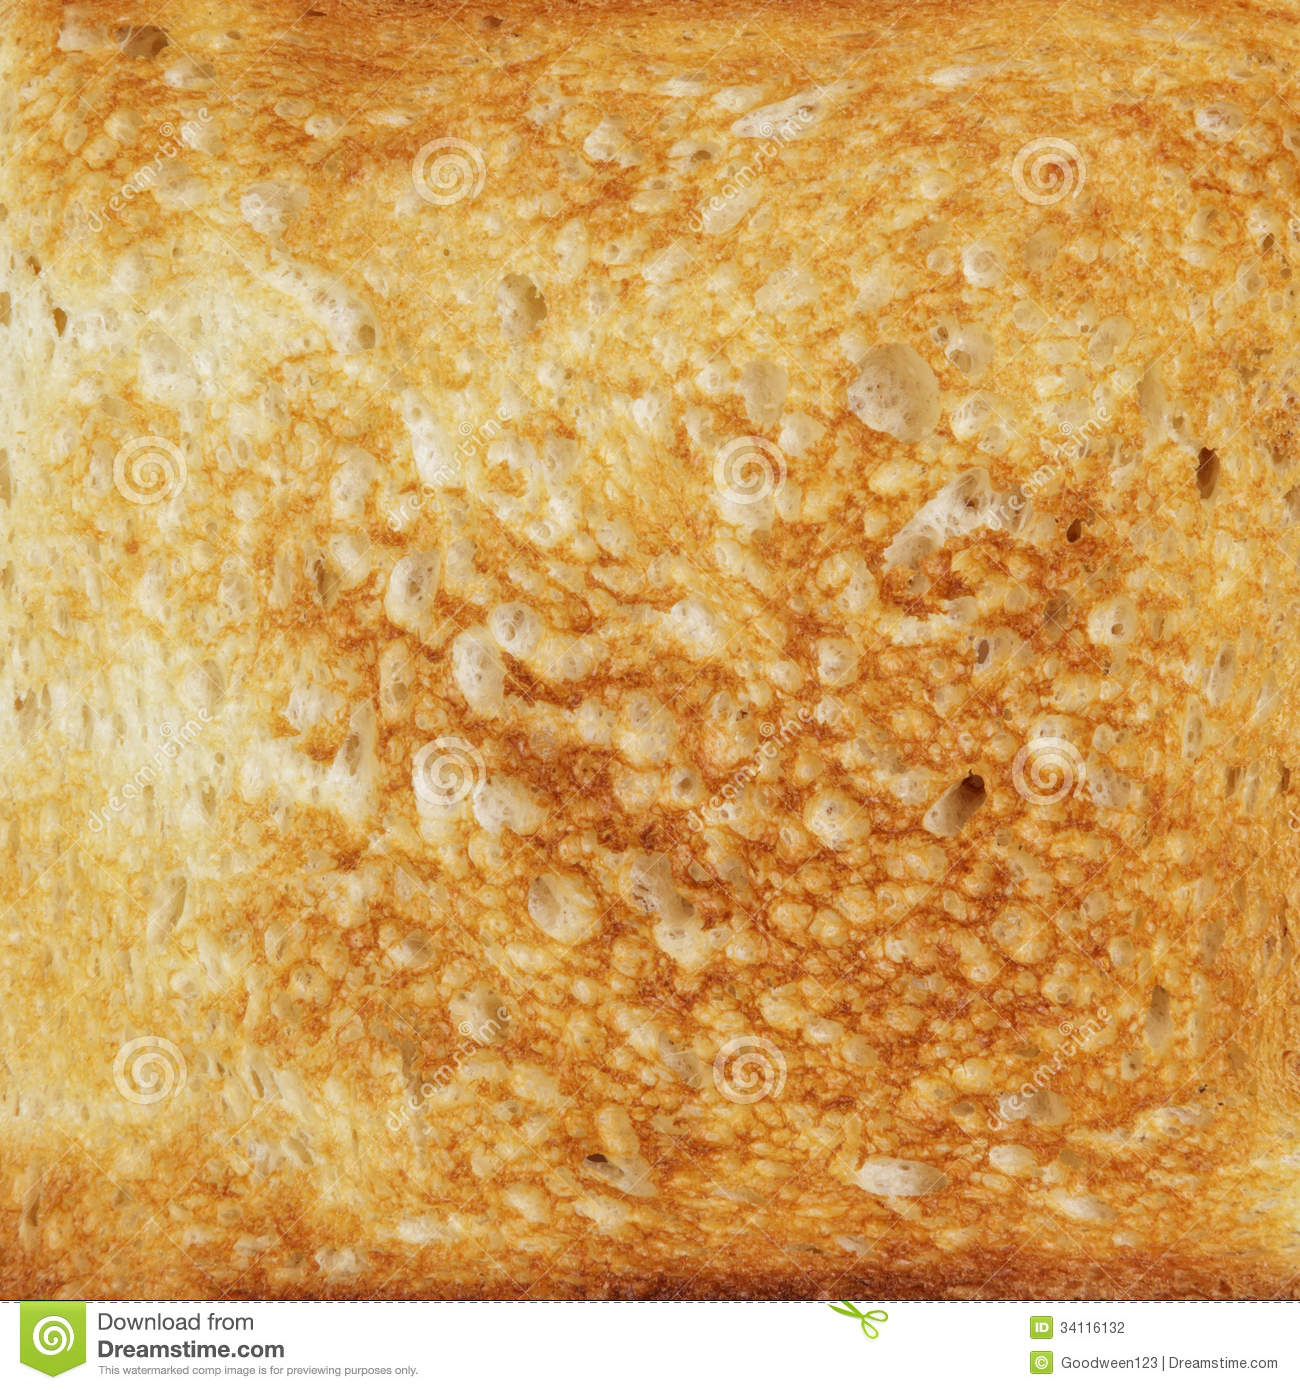 Texture Of Toasted Hot White Bread Stock Photography ...